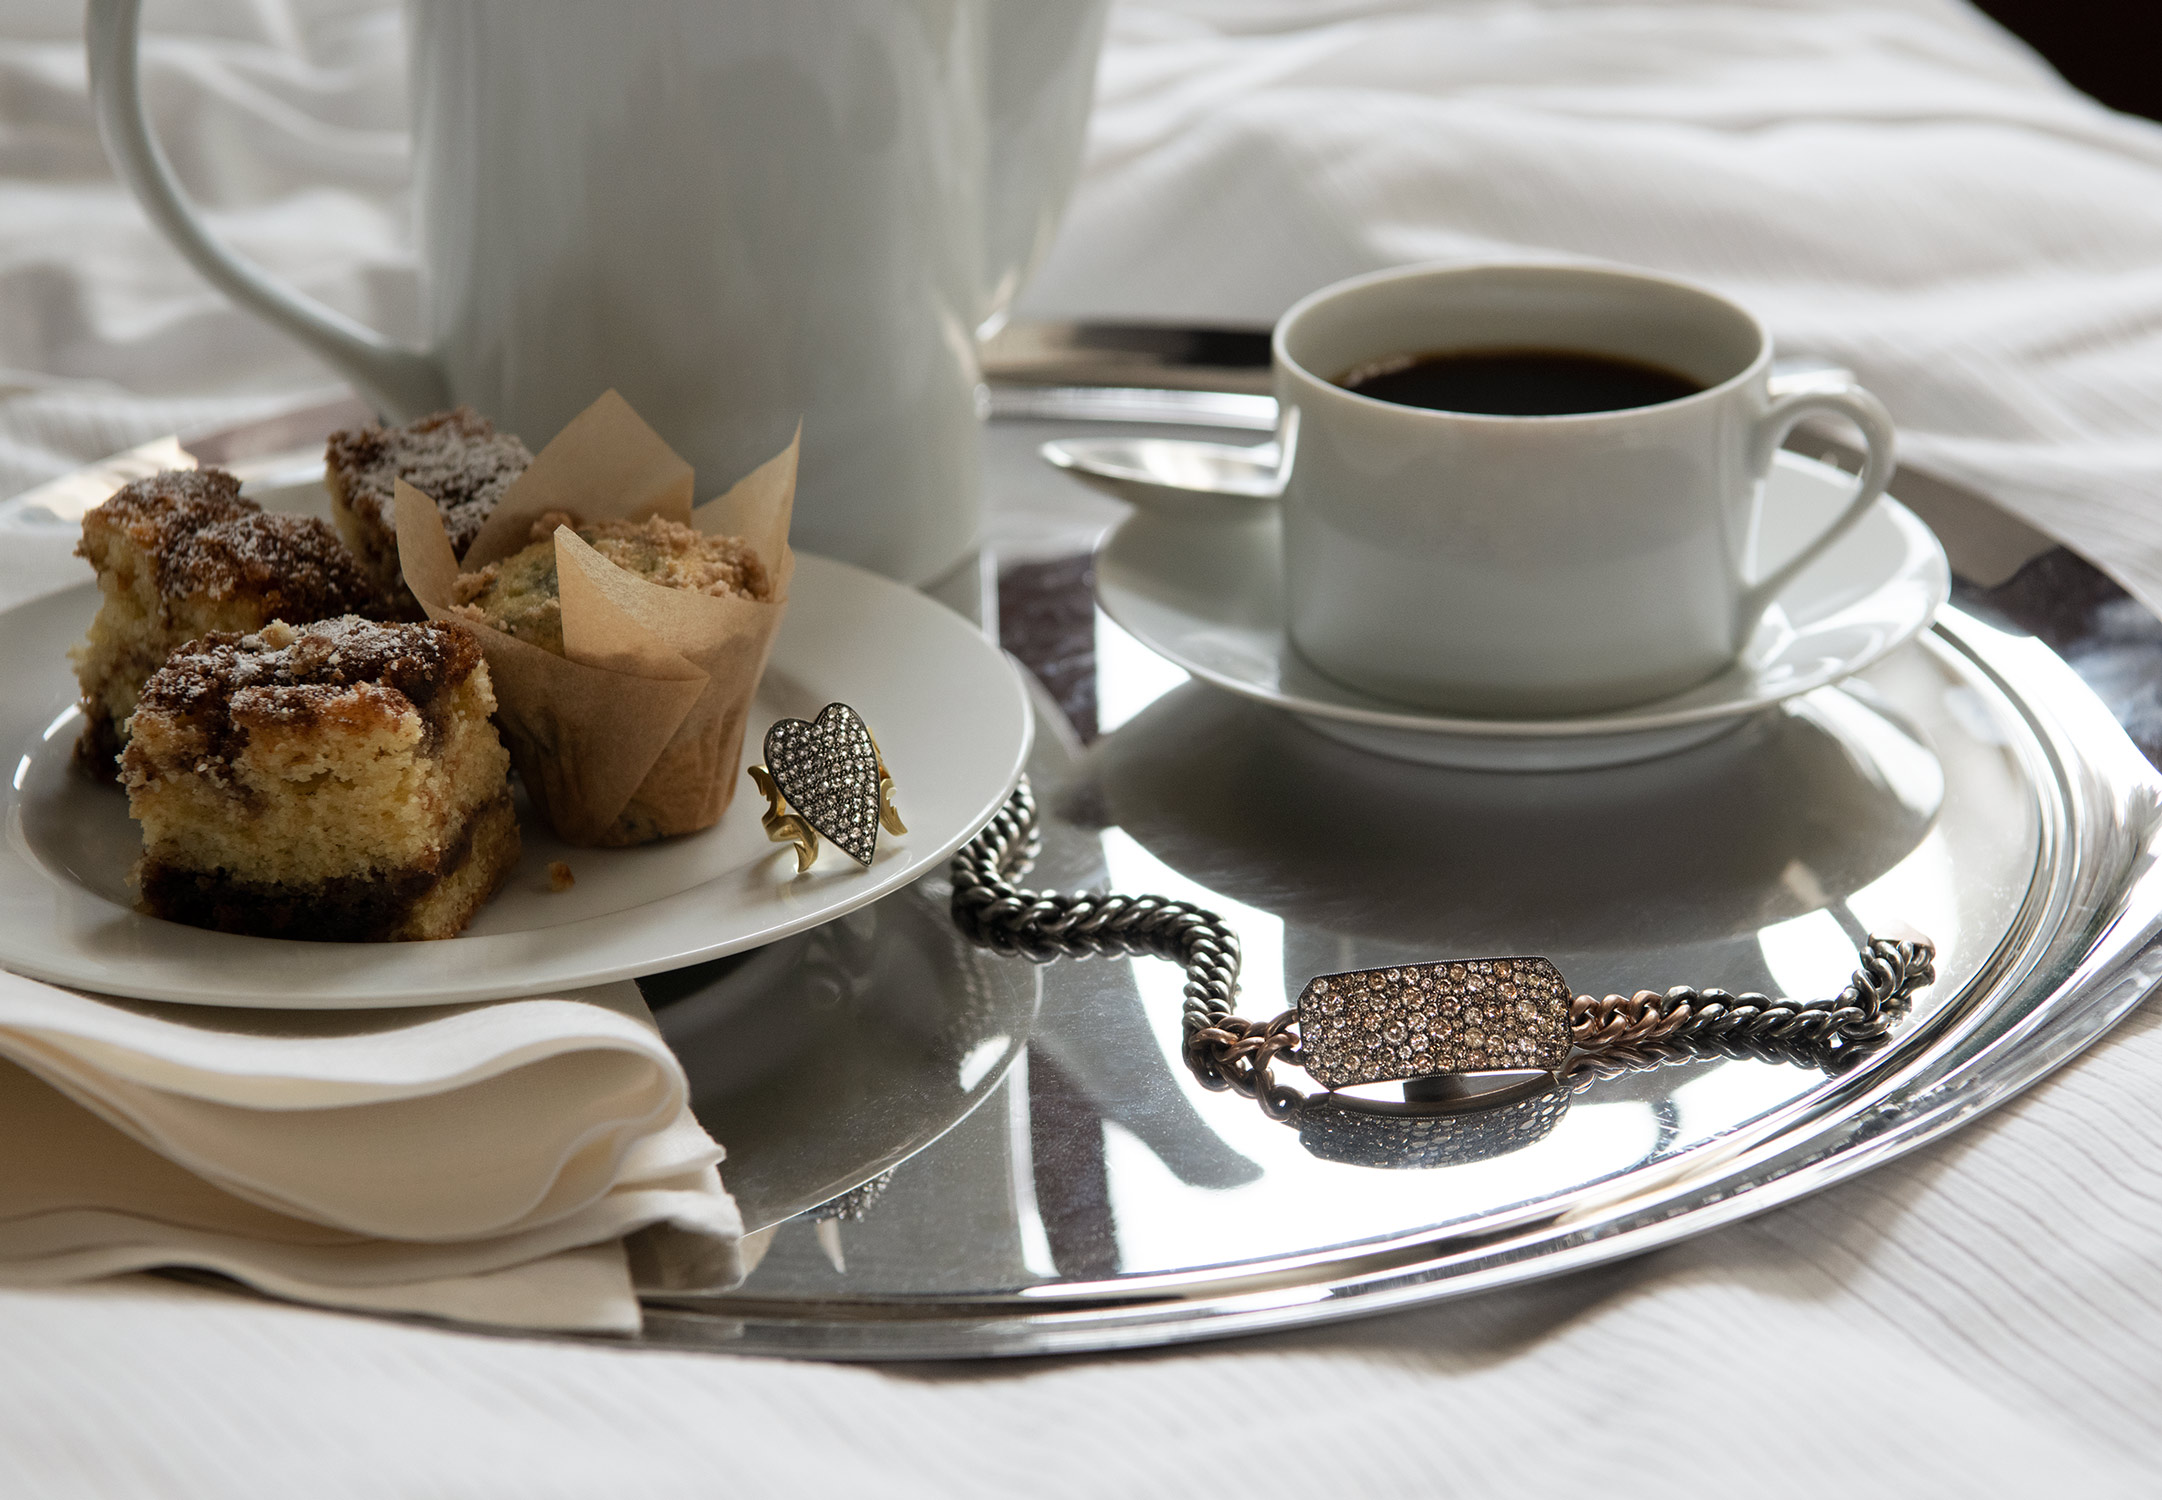 Food: Coffee in Bed